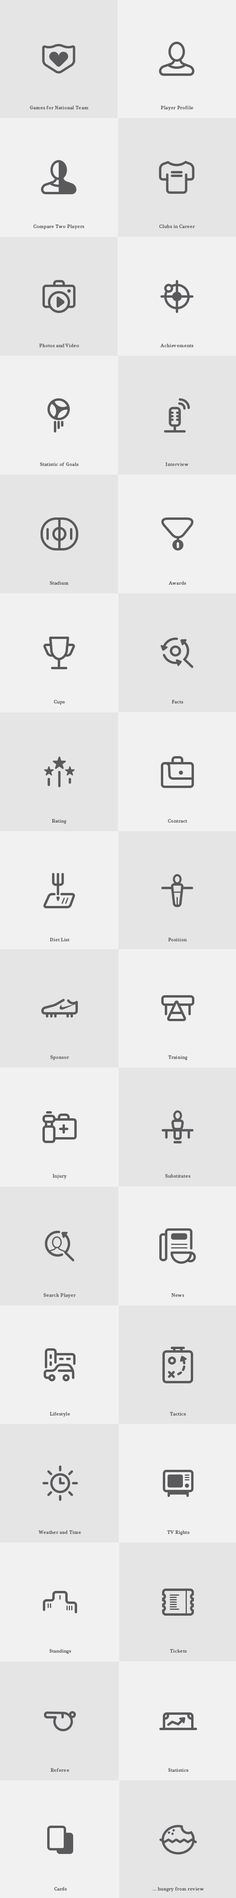 32 Game Icons | GraphicBurger